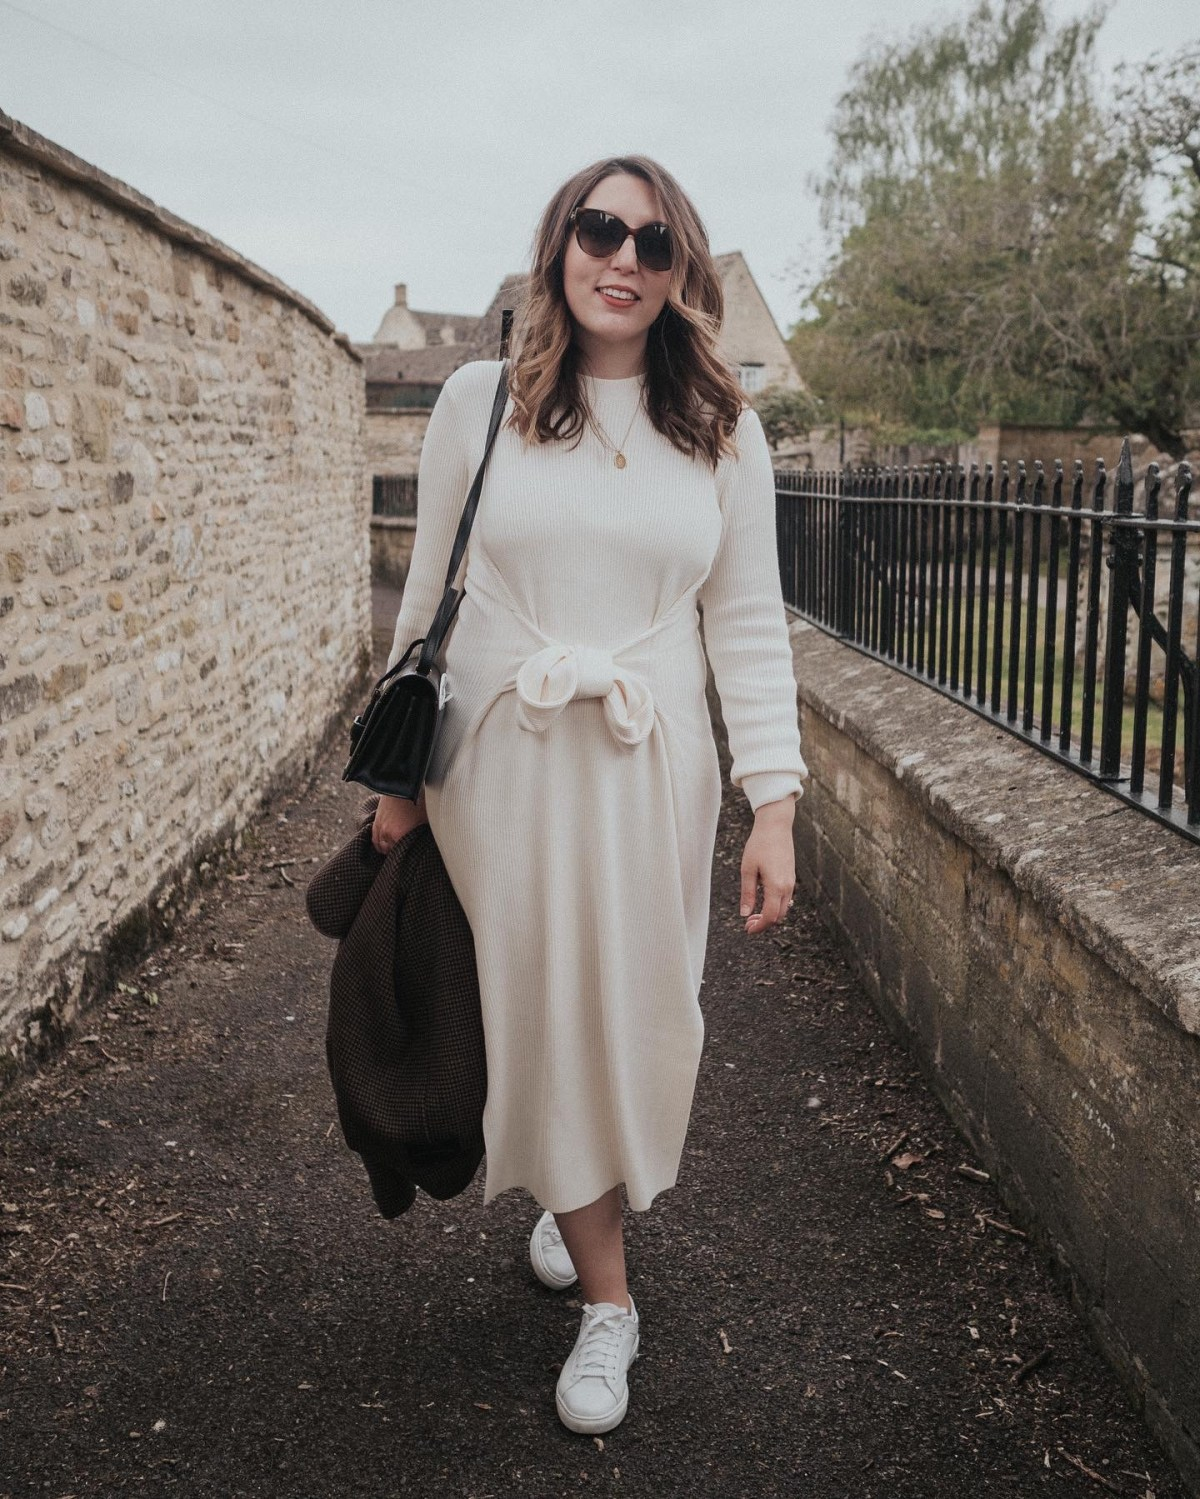 My Pregnancy Capsule Wardrobe, featuring a white ribbed knit maxi dress by & Other Stories, black crossbody bag, M Gemi white sneakers outfit   W&S